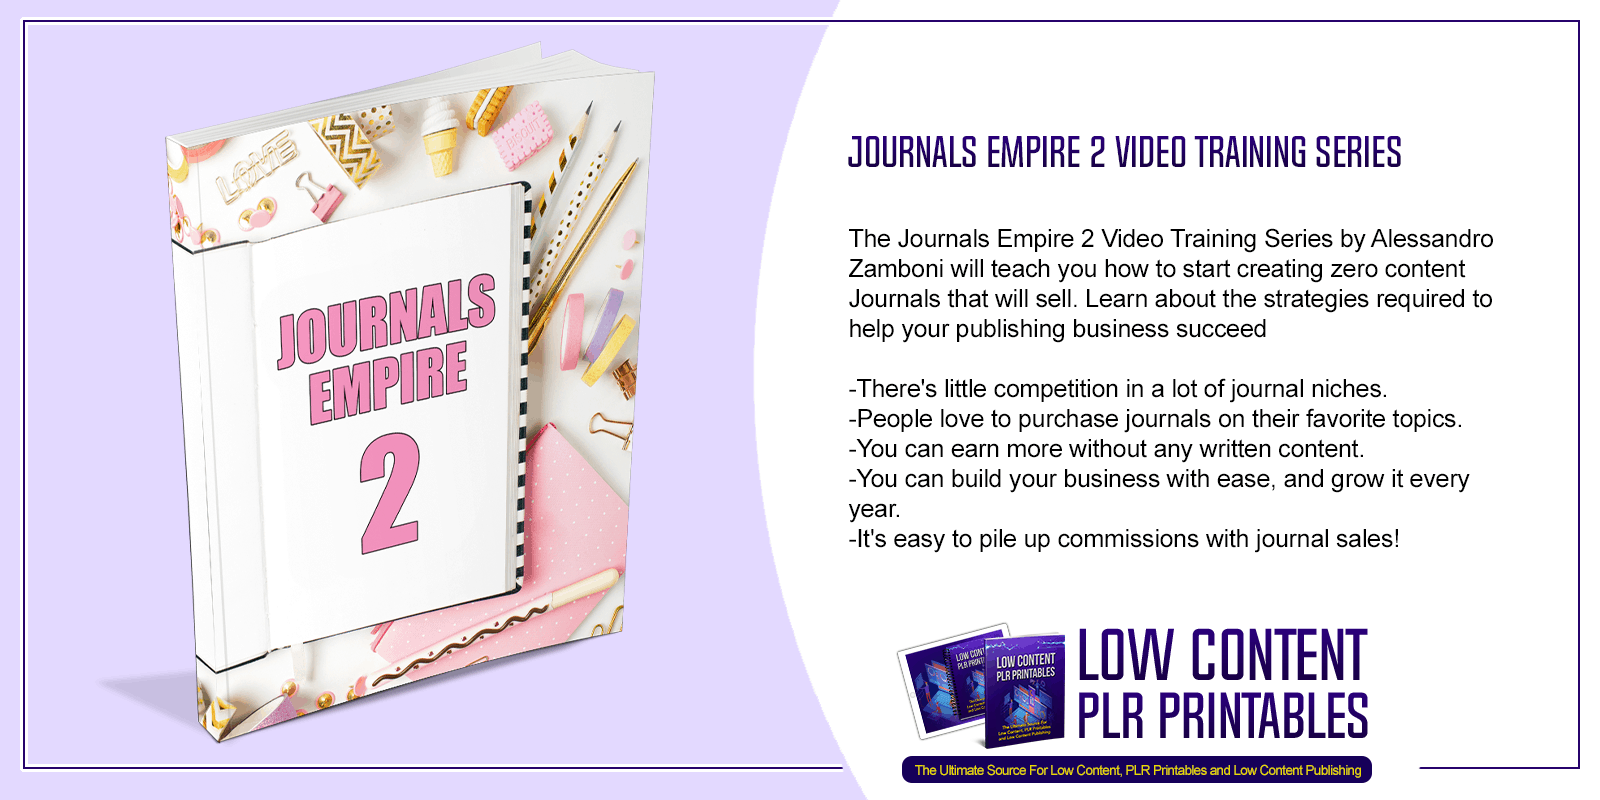 Journals Empire 2 Video Training Series